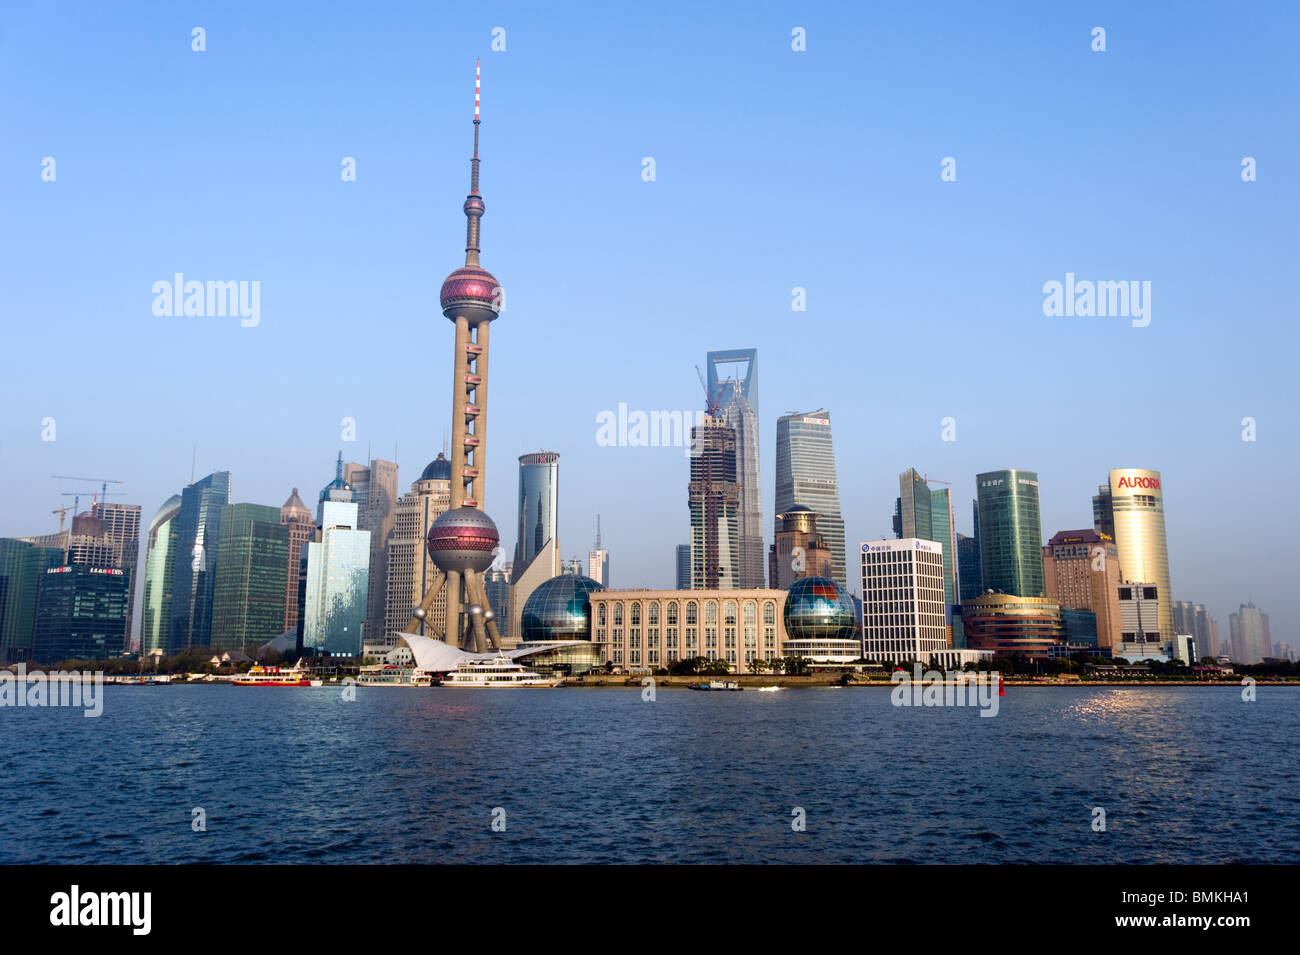 View on the Huangpu river waterfront and city skyline, Shanghai, China - Stock Image